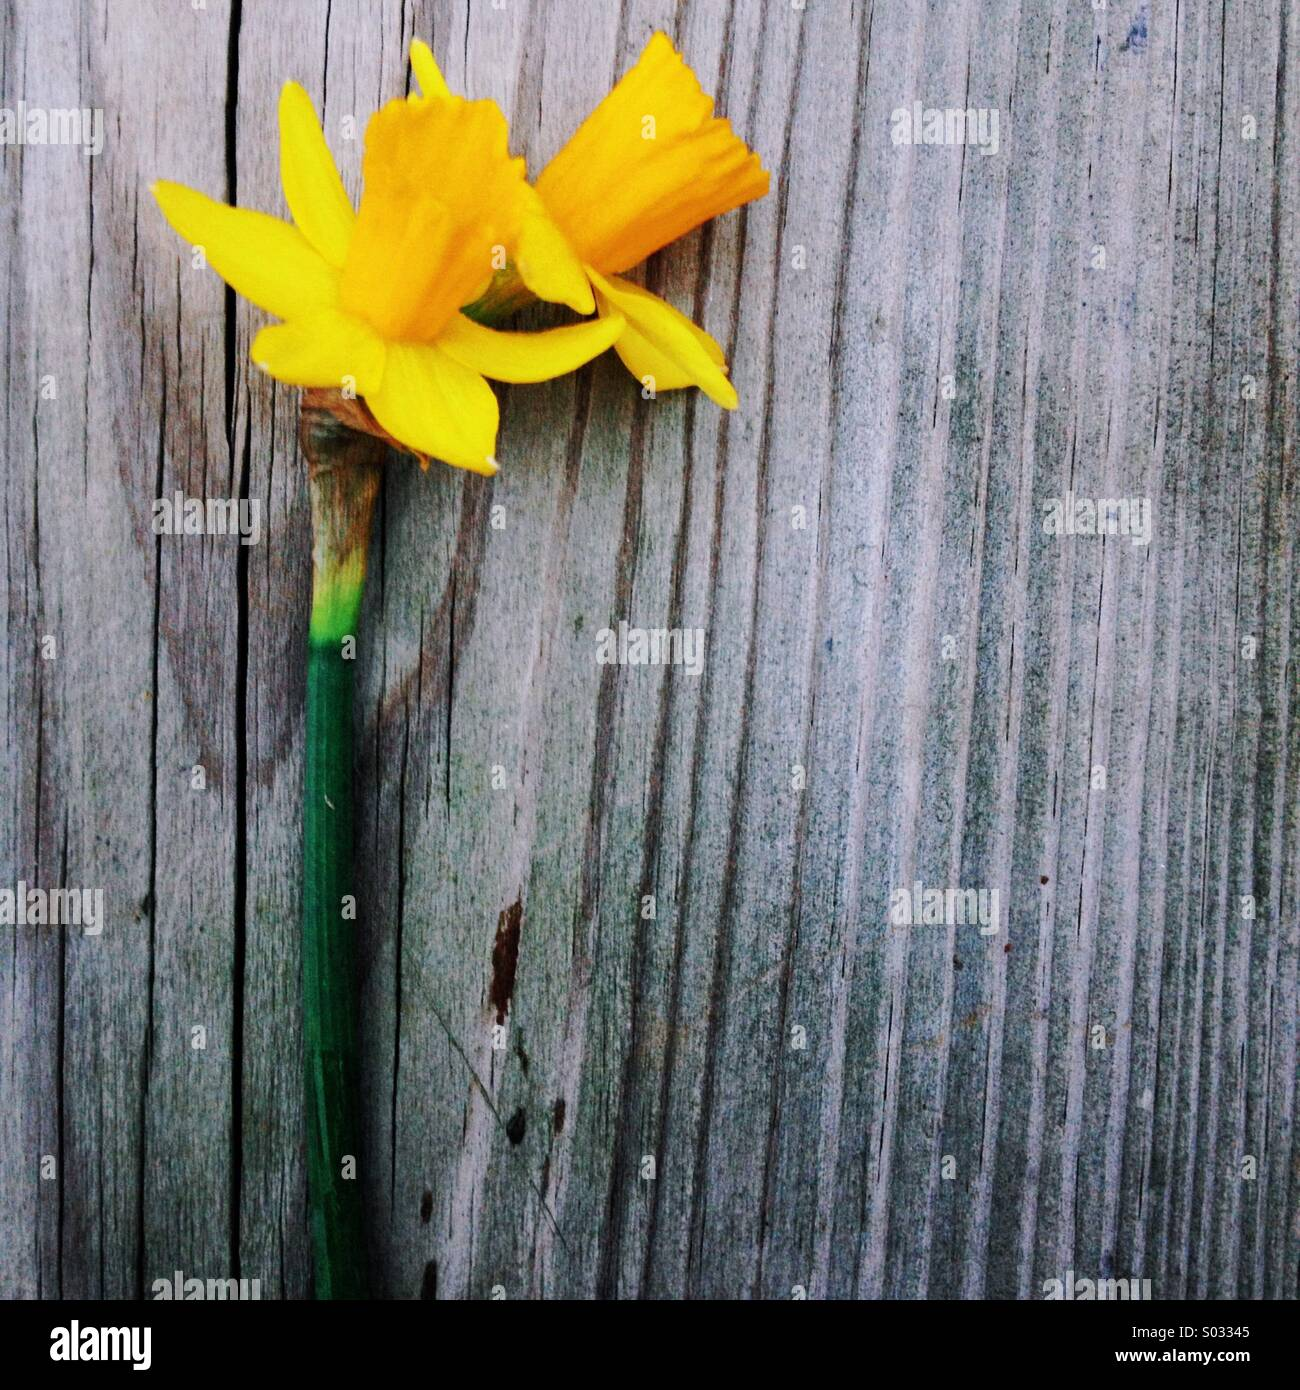 A close up of a double headed daffodil laying on a wooden background - Stock Image